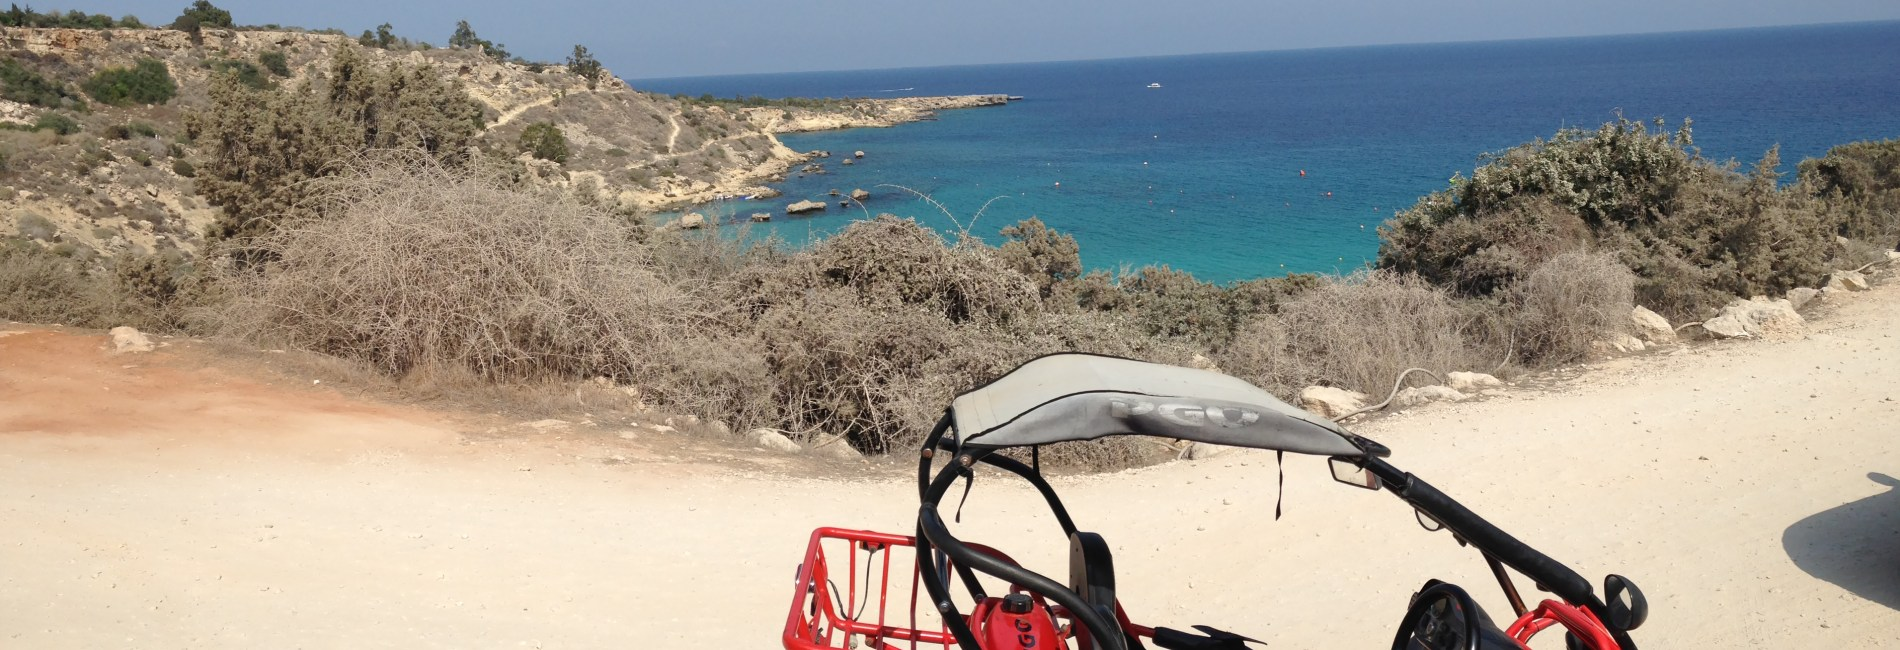 Looking For A Summer Holiday? Here's Why You Should Consider Cyprus